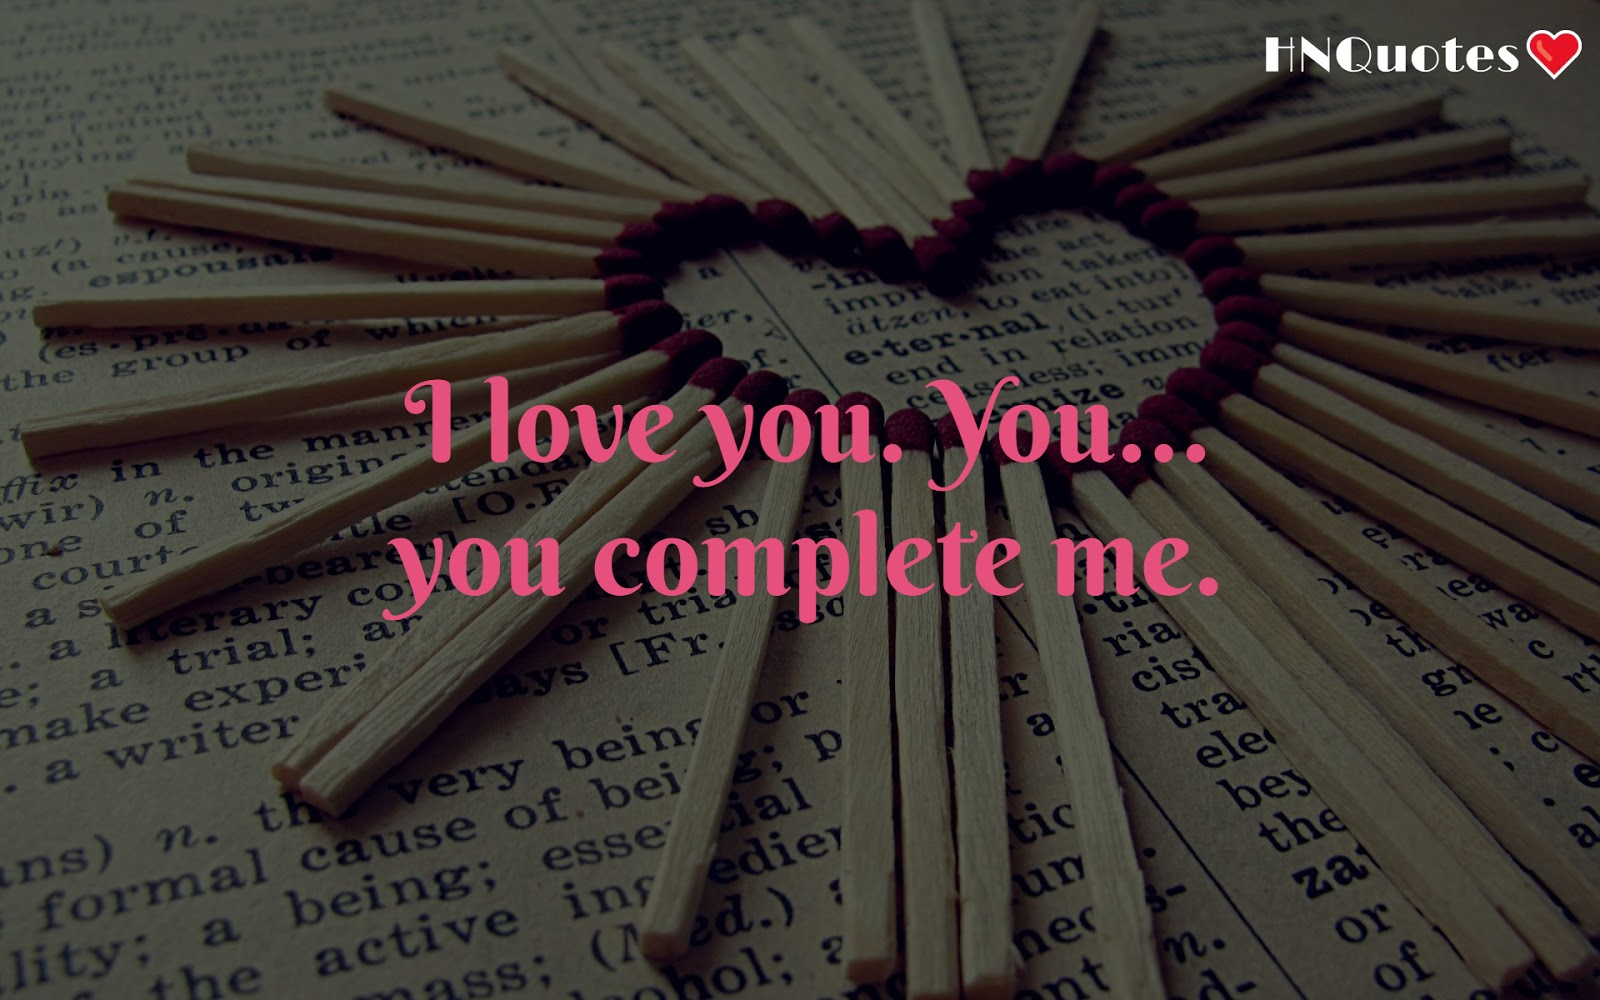 Romantic-Quotes-about-Love-Forever-I-Love-You-67-[HNQuotes]